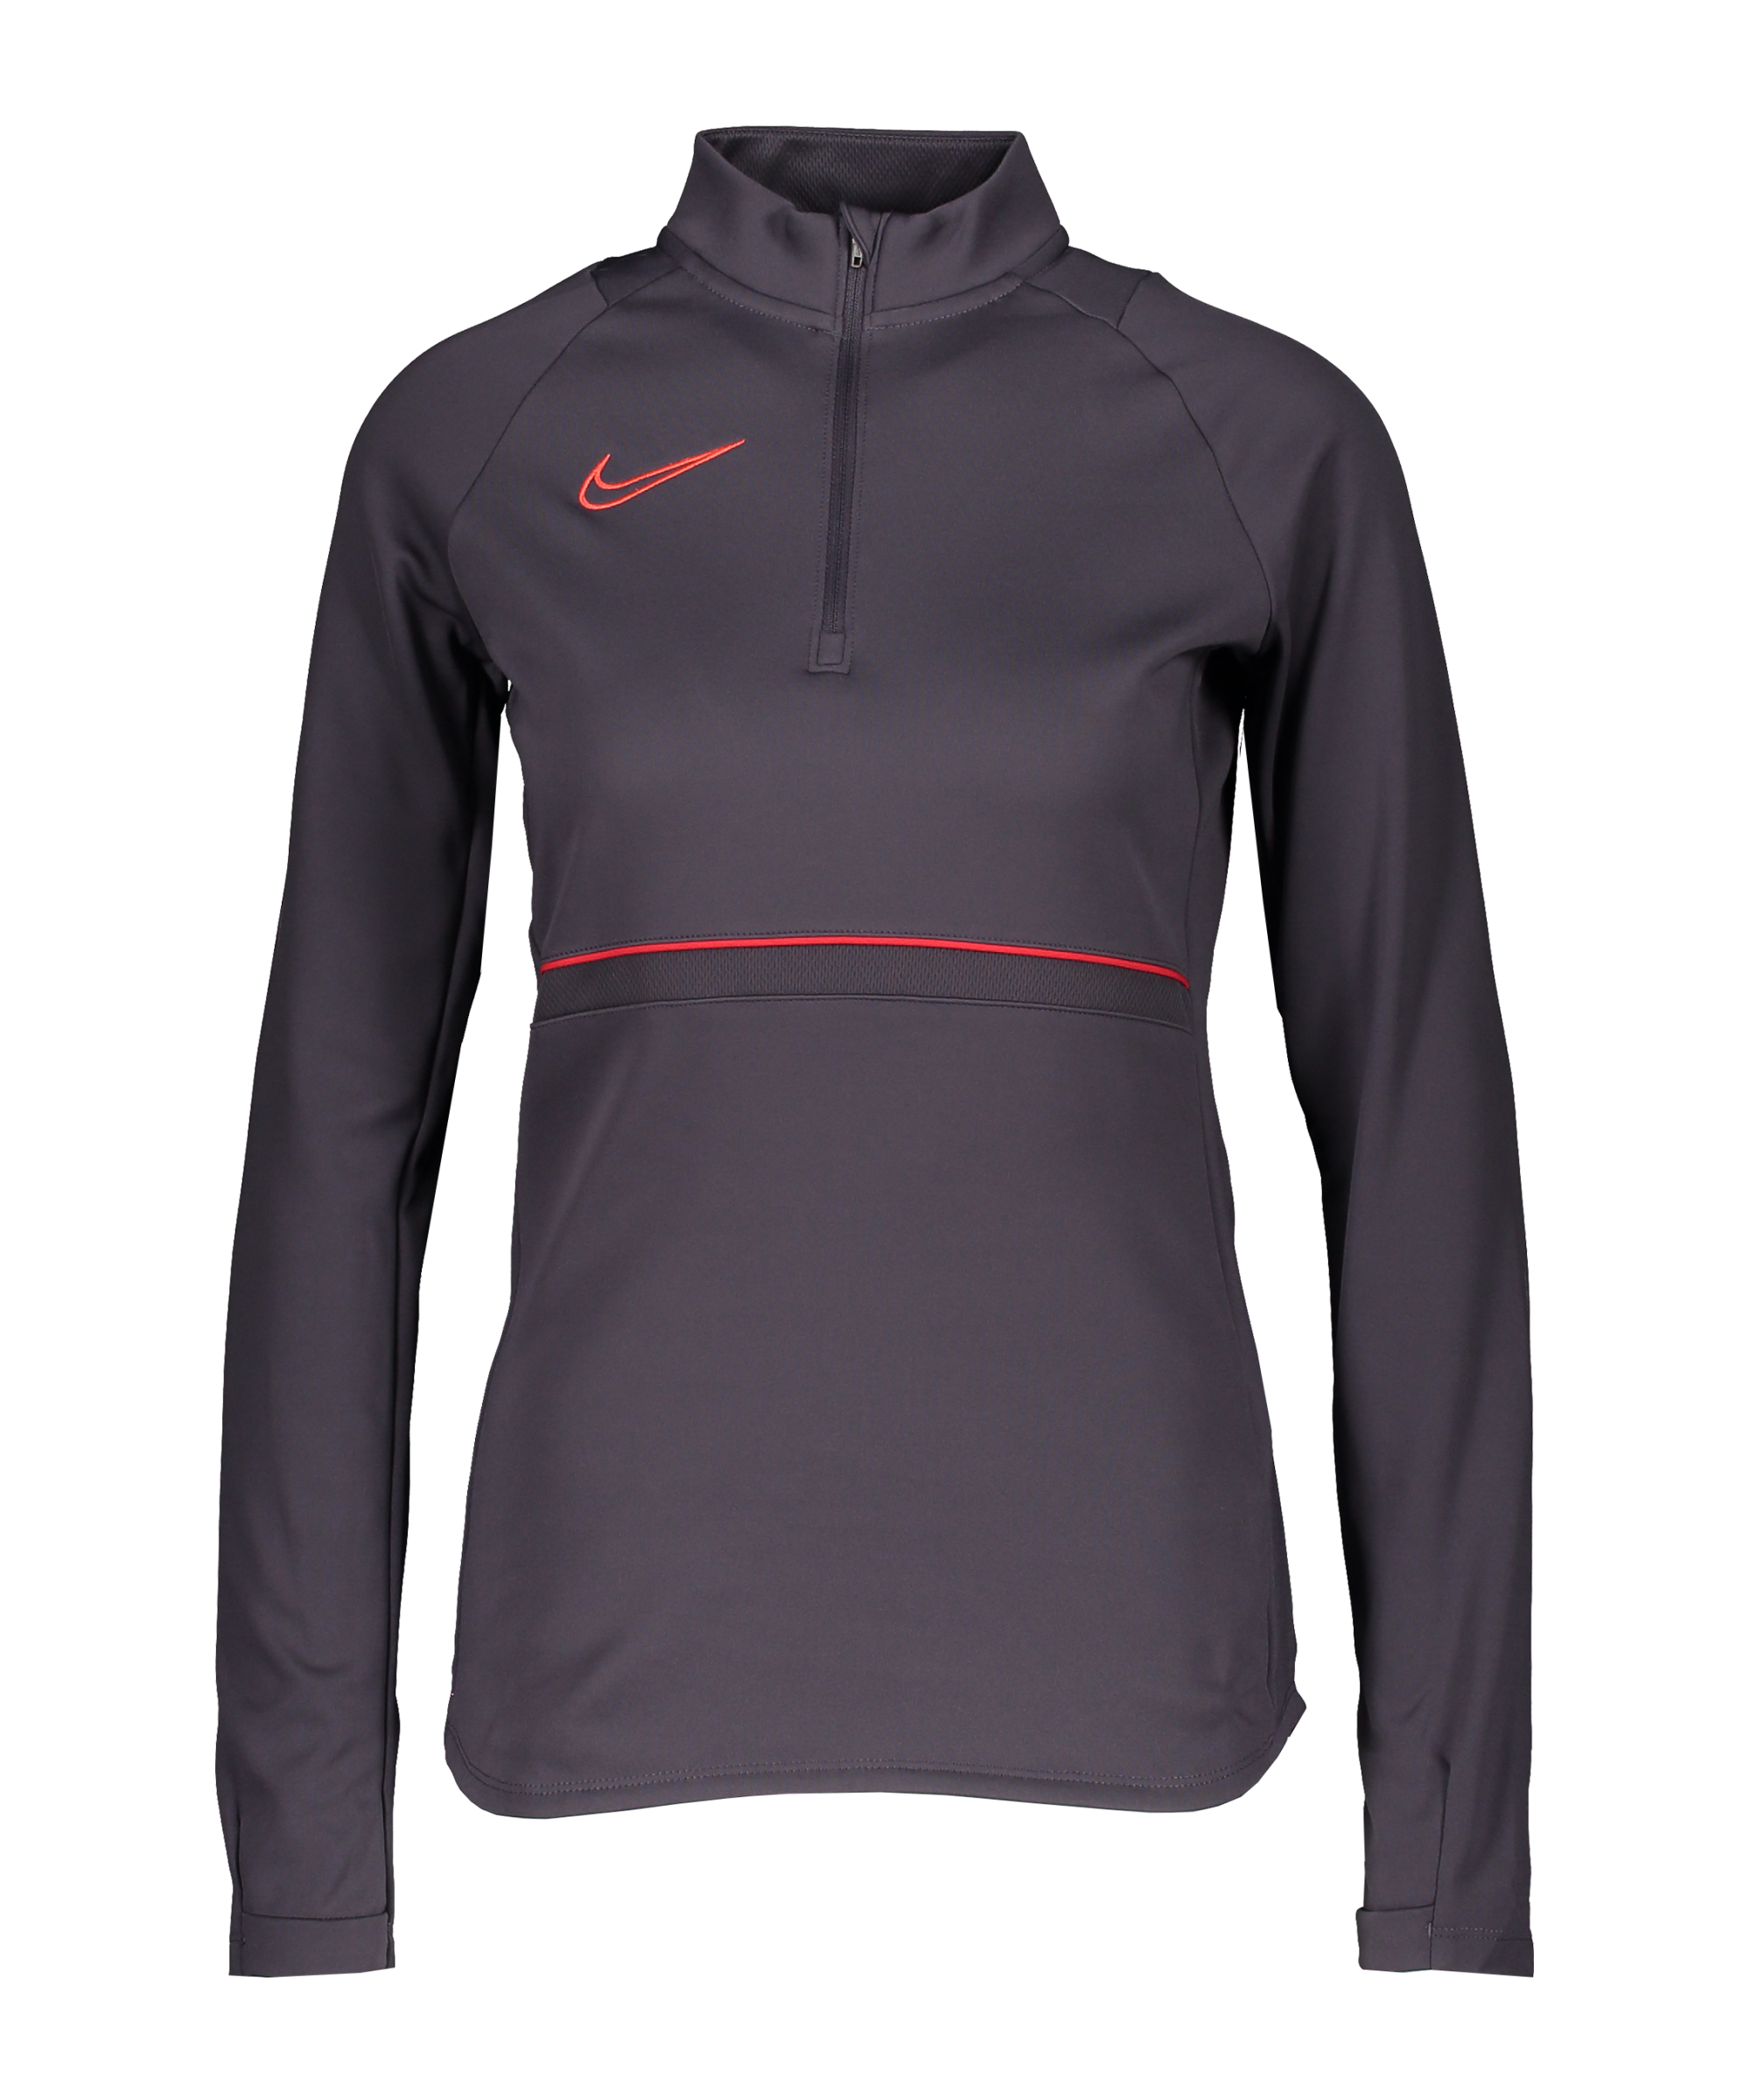 Nike Academy 21 Drill Top Women